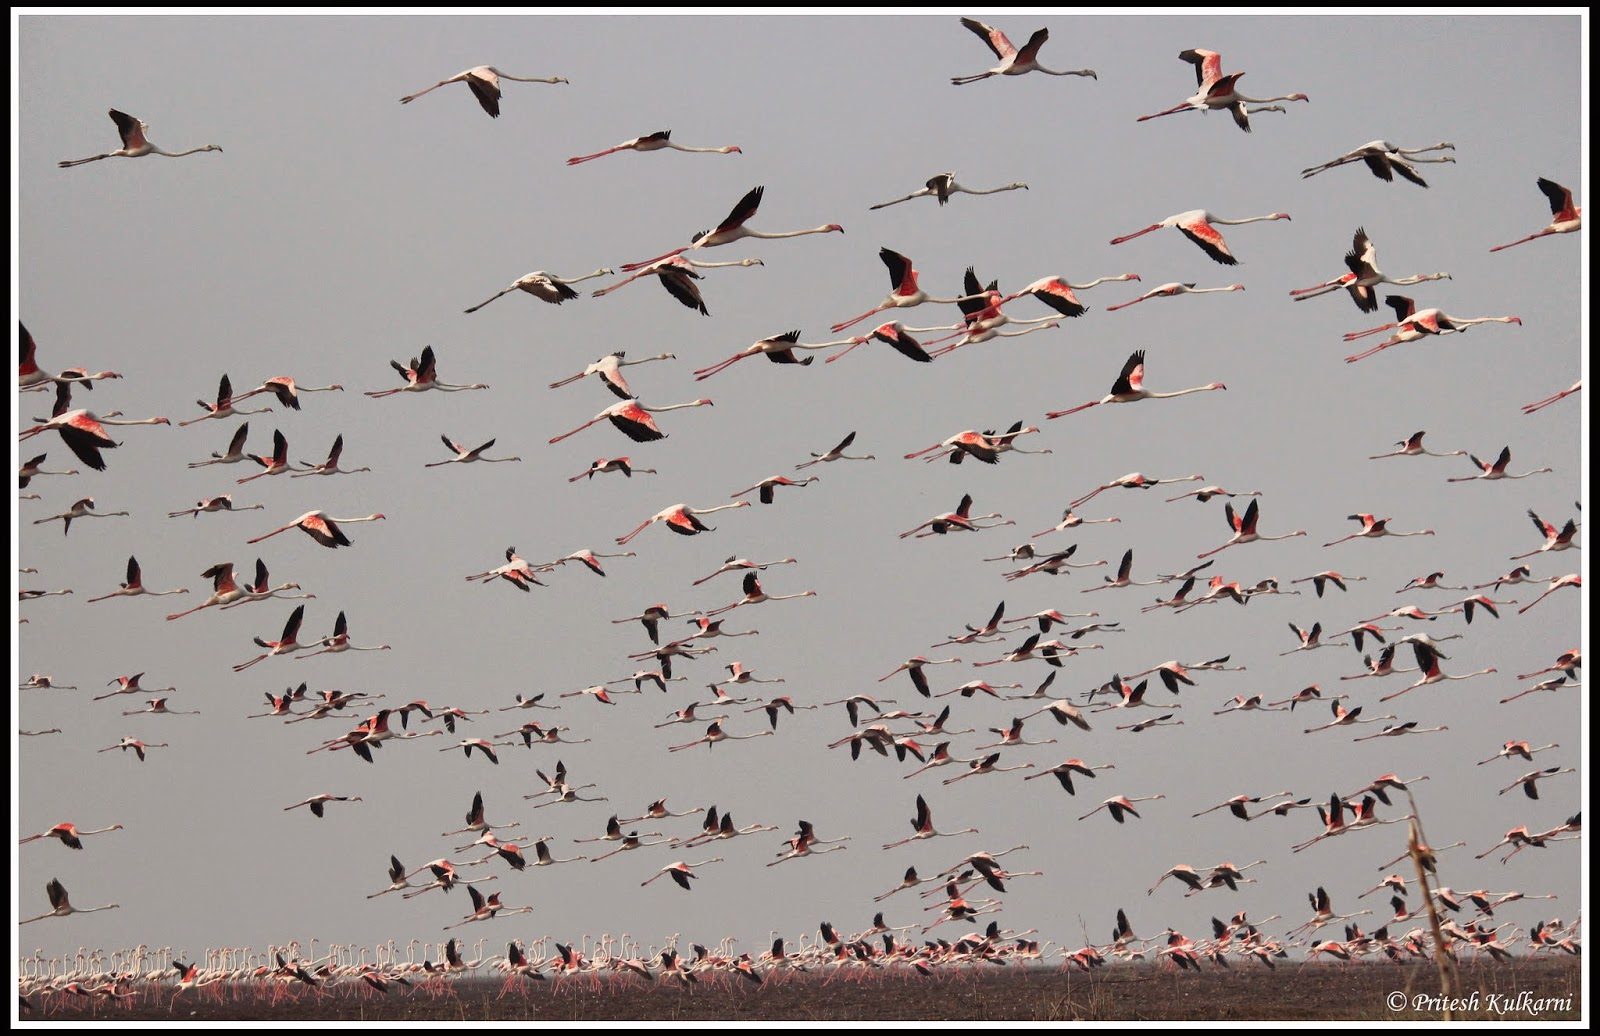 Only greater flamingo